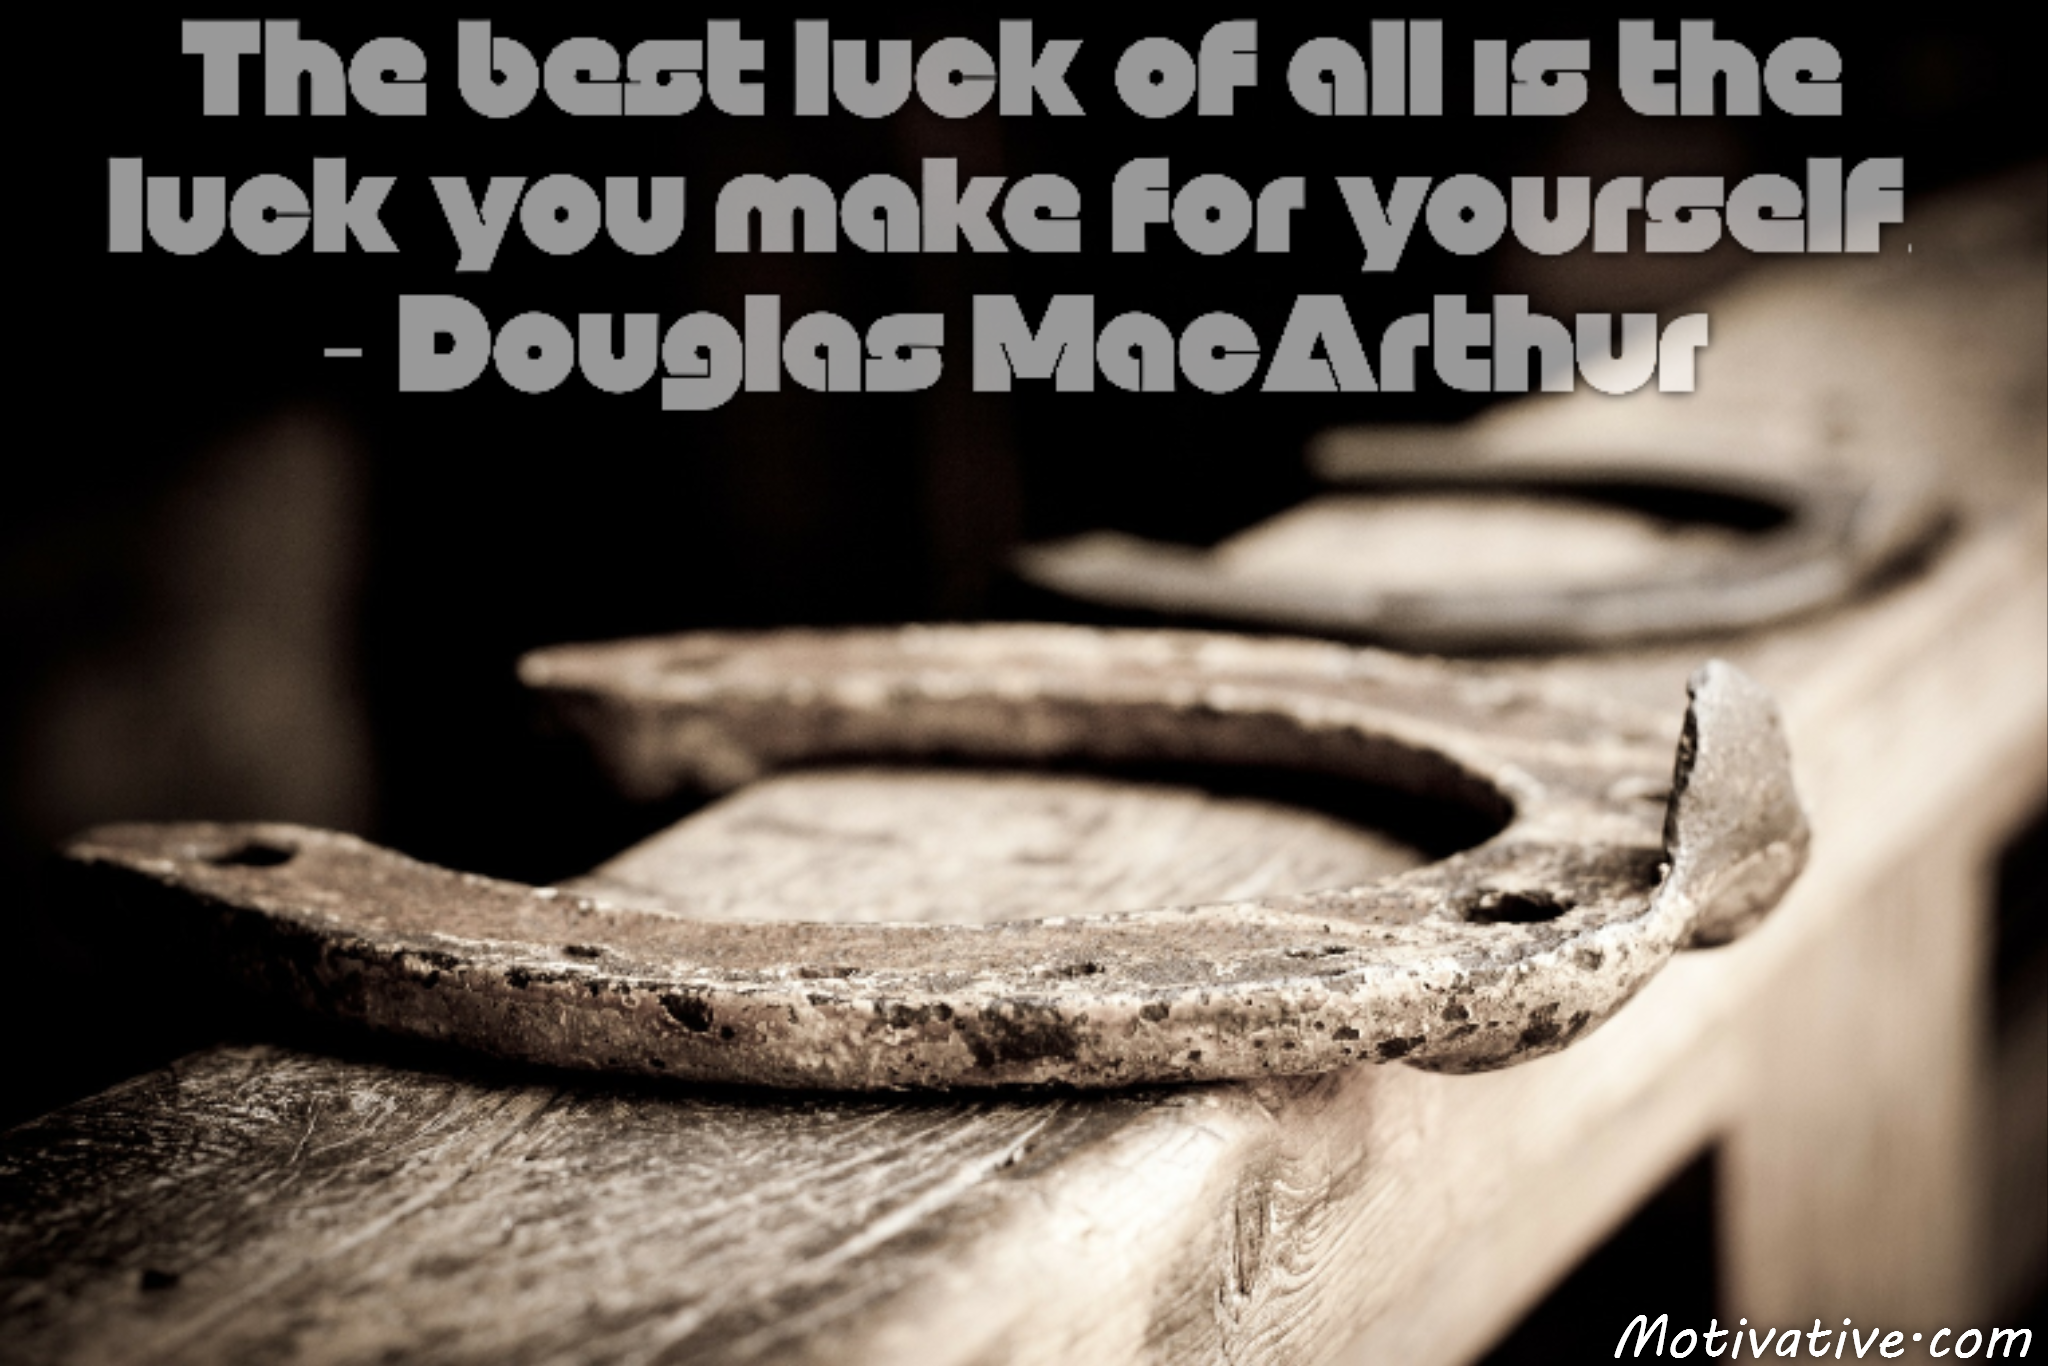 The best luck of all is the luck you make for yourself. – Douglas MacArthur